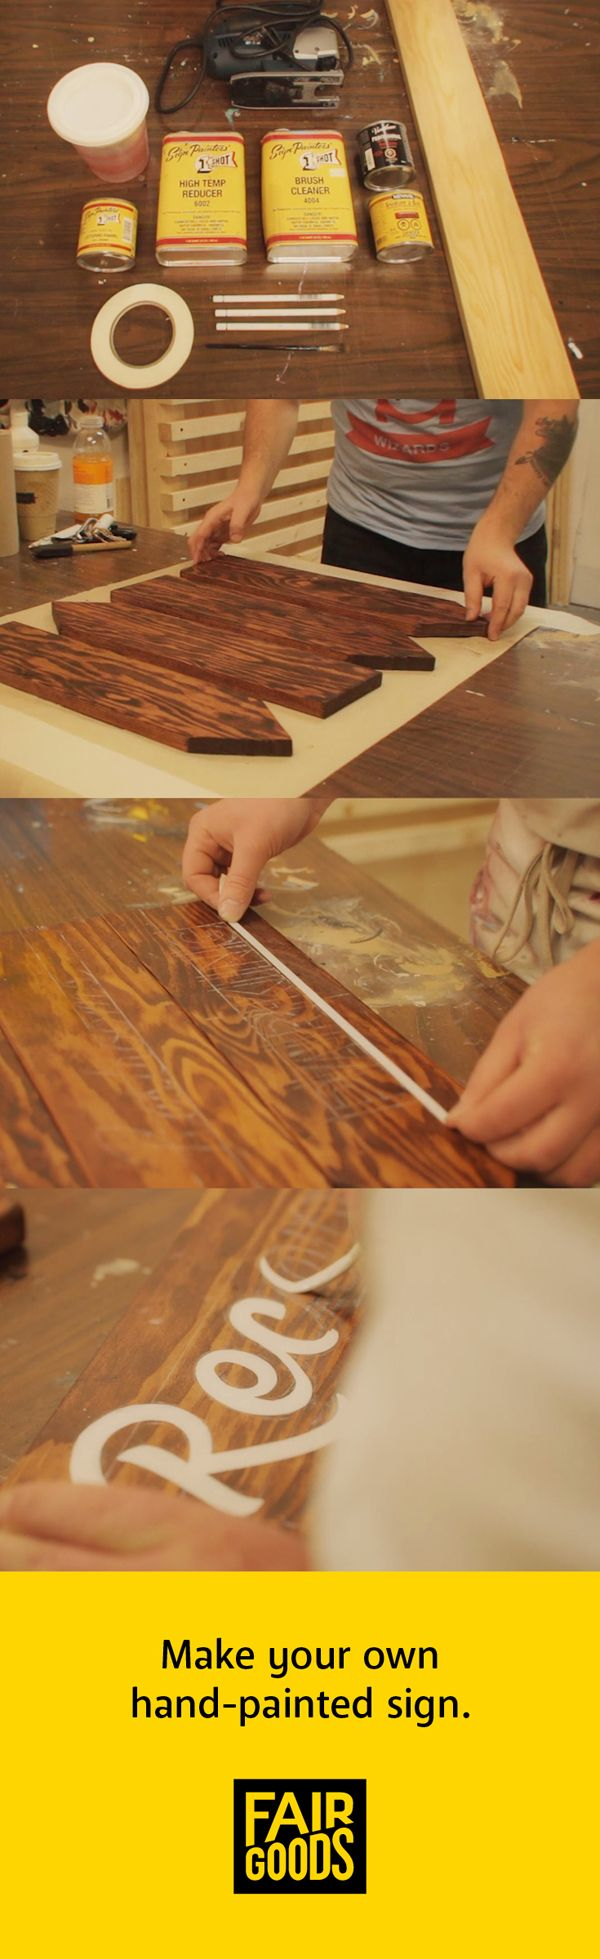 Watch our video tutorial on how to make your own hand-painted sign!